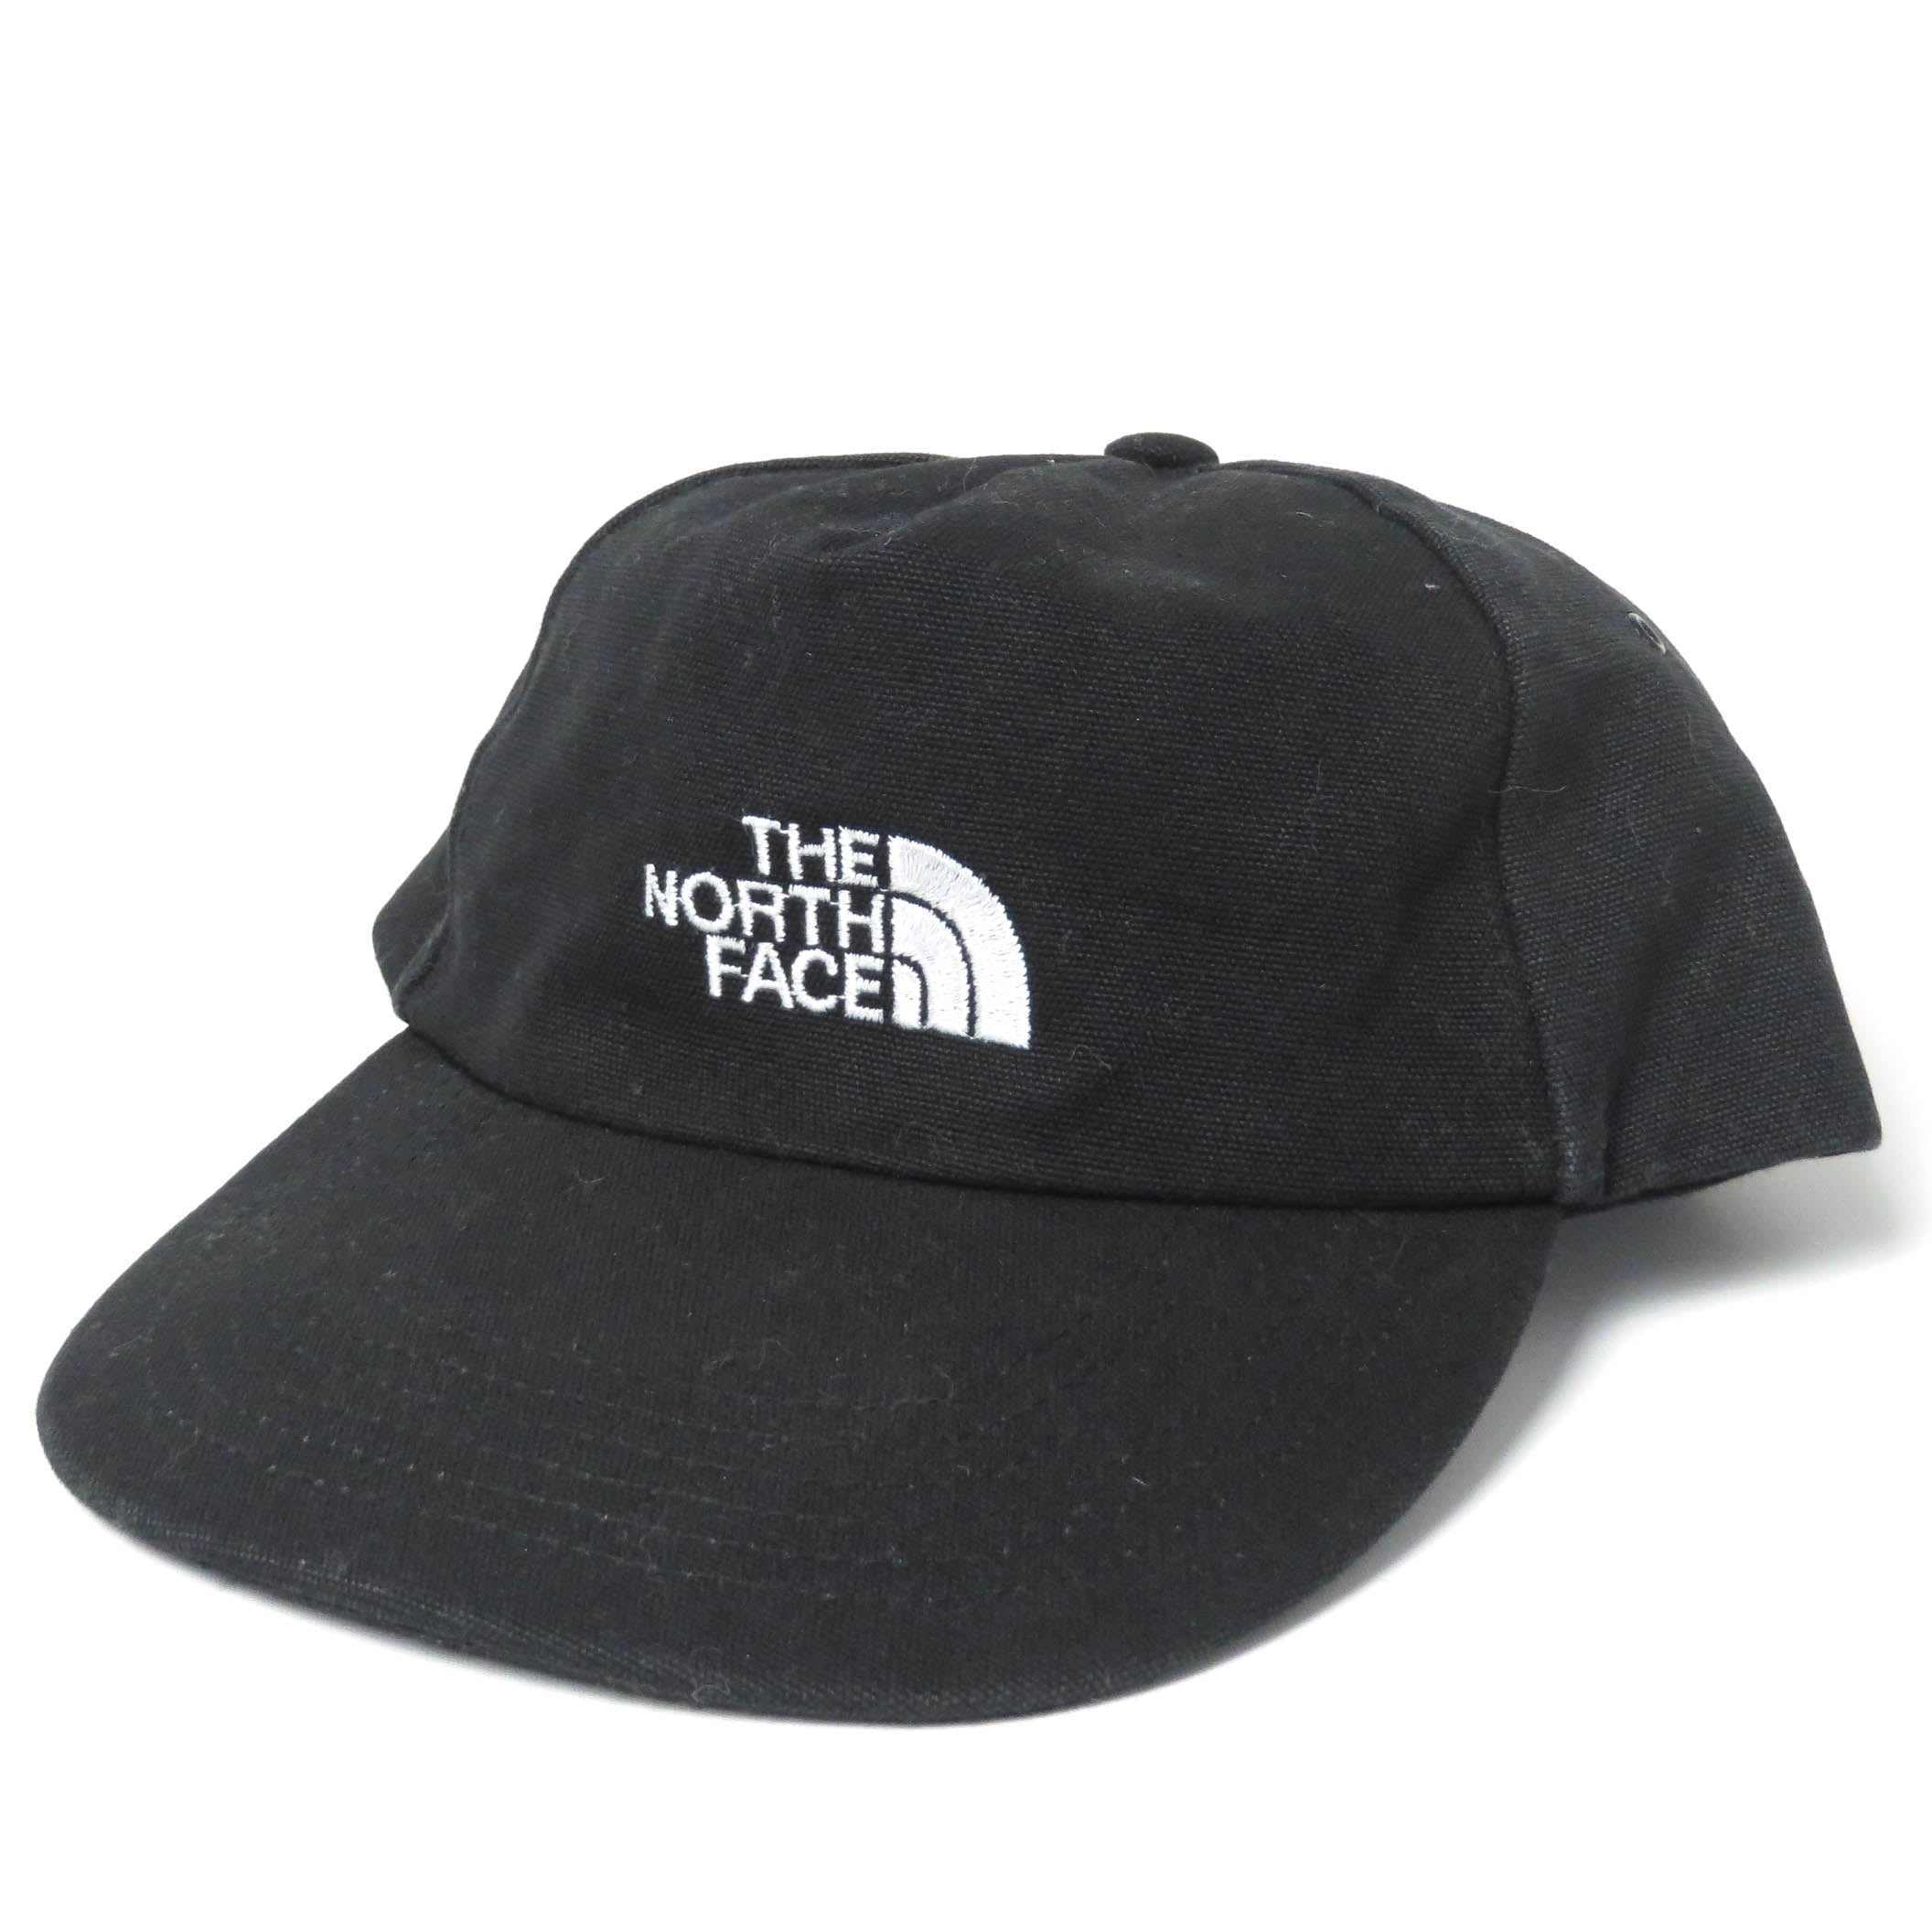 Vintage The North Face Long Bill Strapback Hat